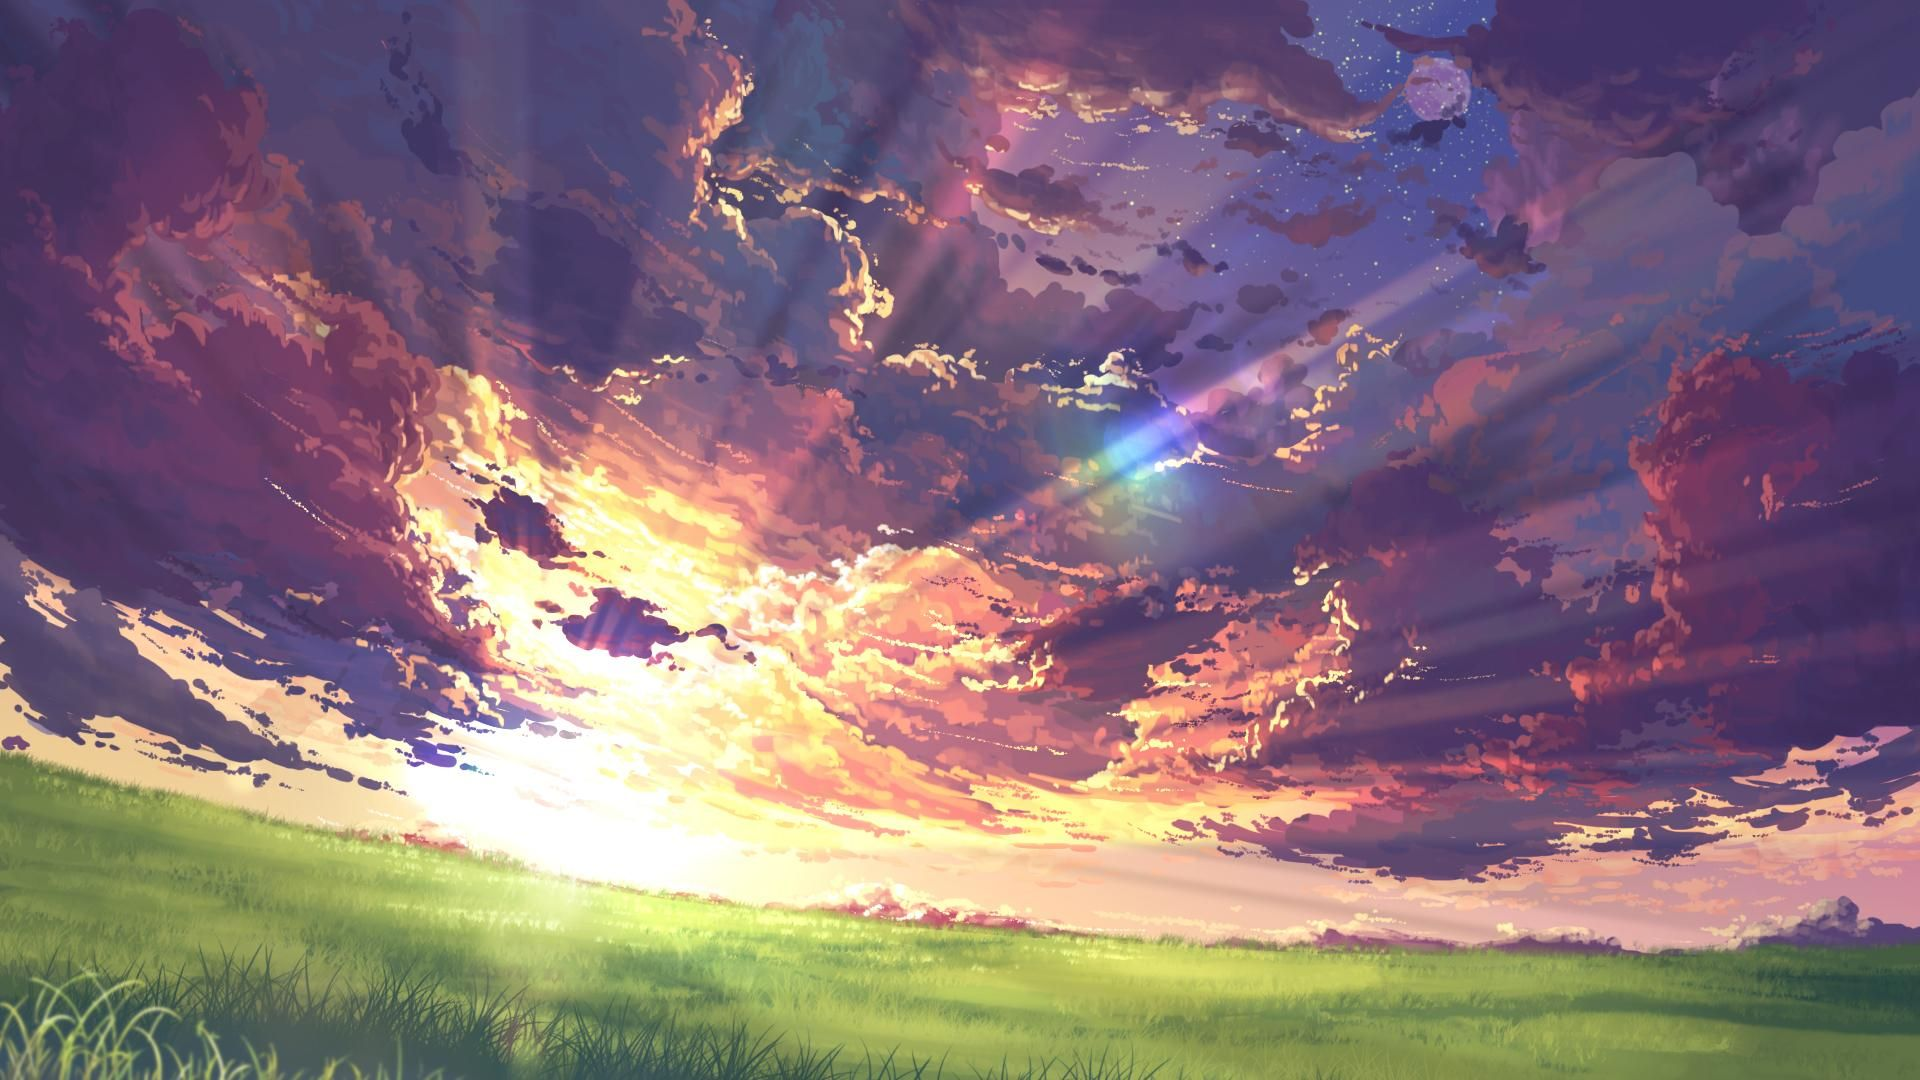 Vibrant Dawn 1920 X 1080 R Wallpapers Scenery Wallpaper Anime Wallpaper 1920x1080 Anime Scenery